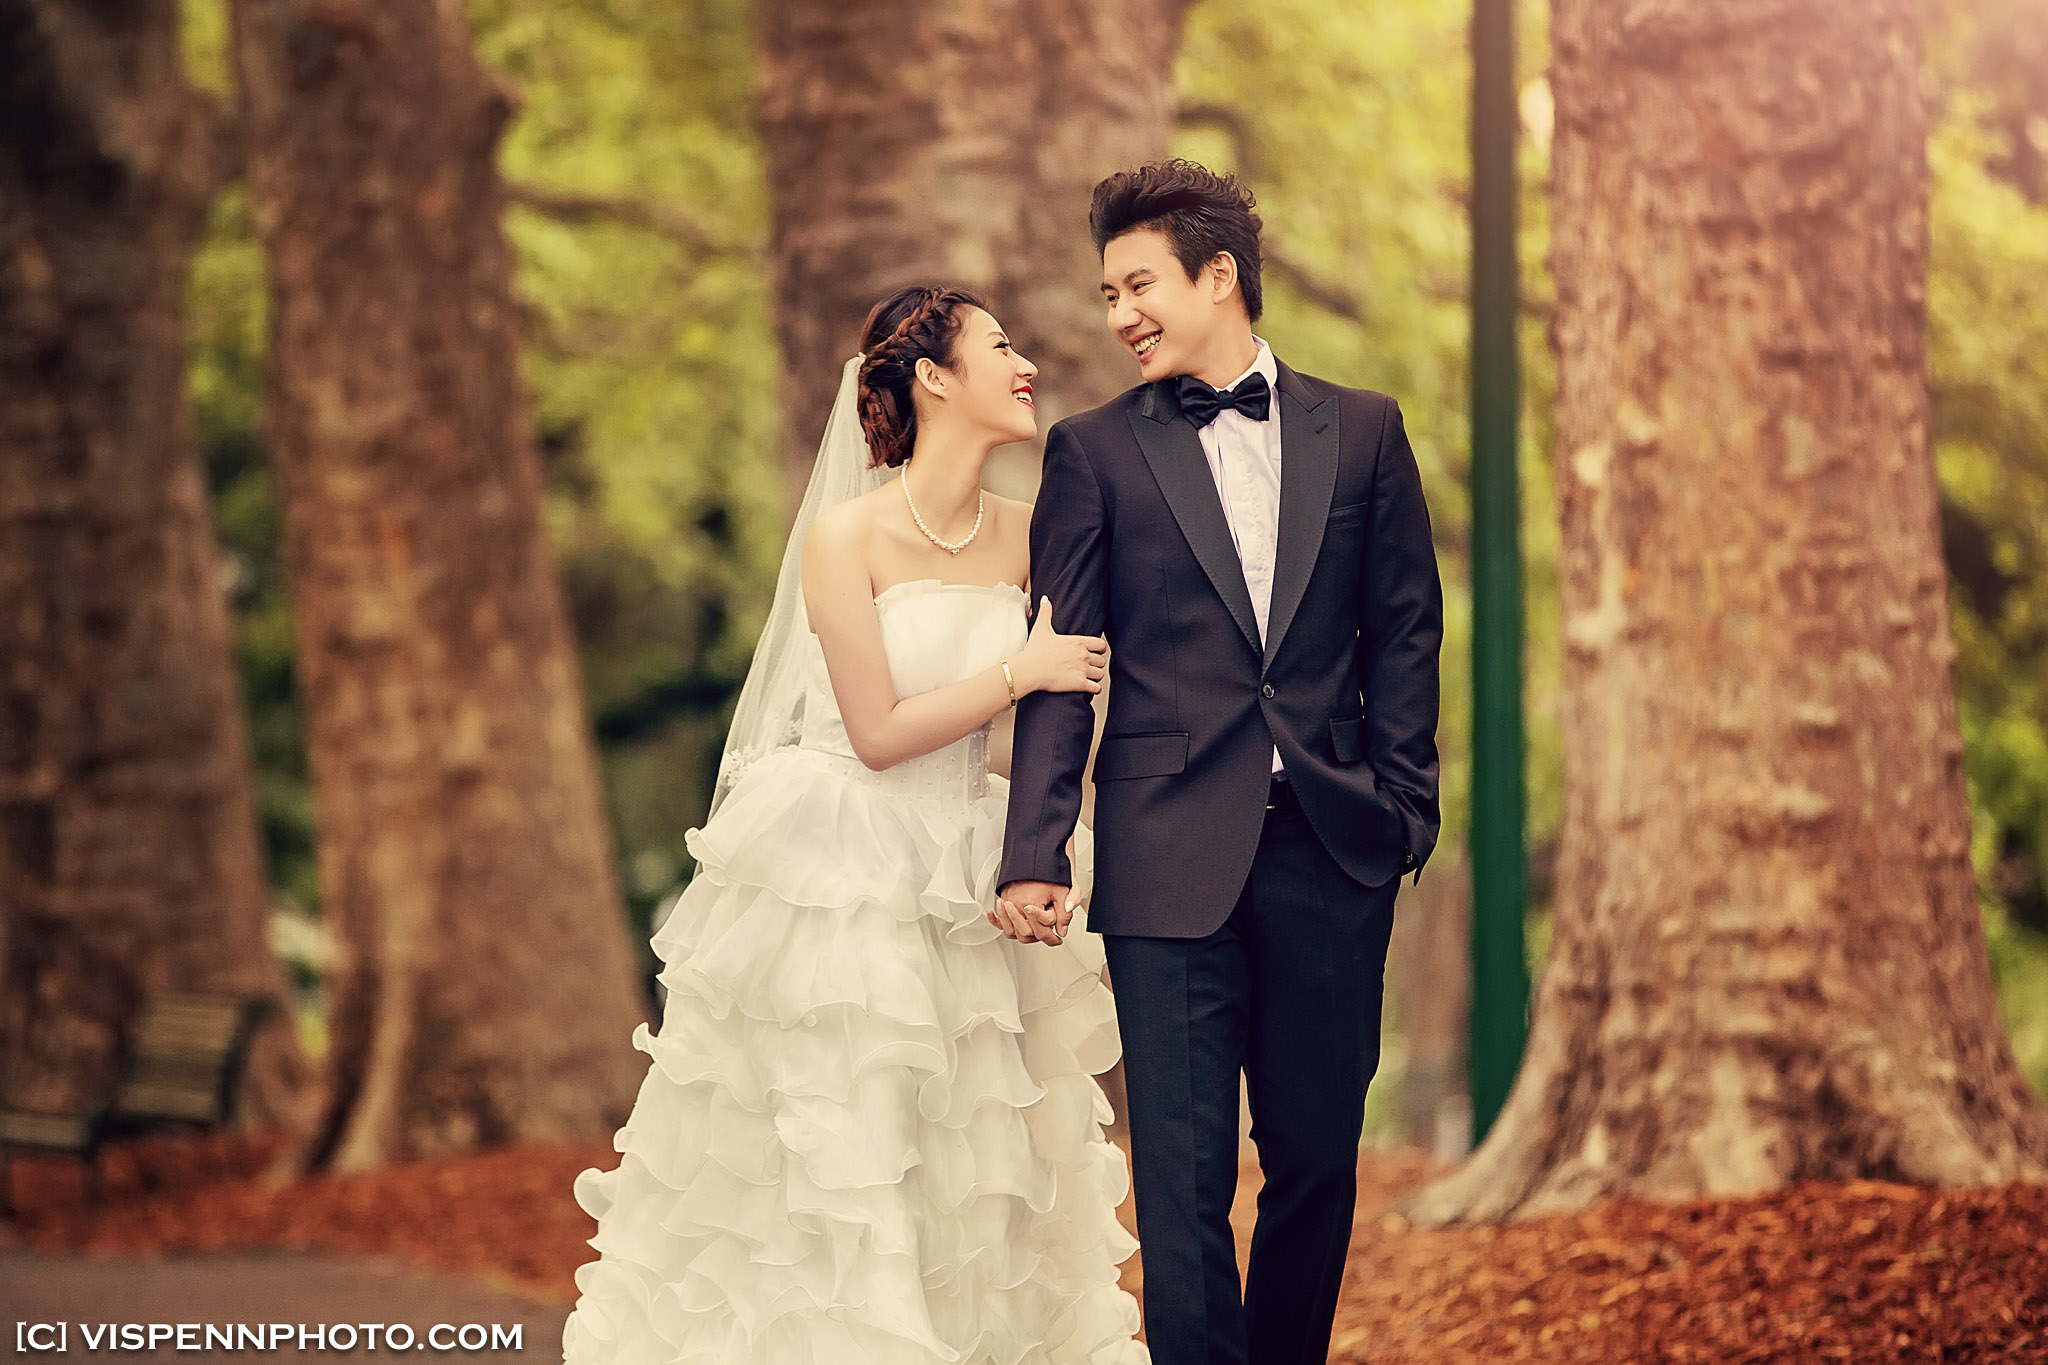 PRE WEDDING Photography Melbourne 5D3 3490